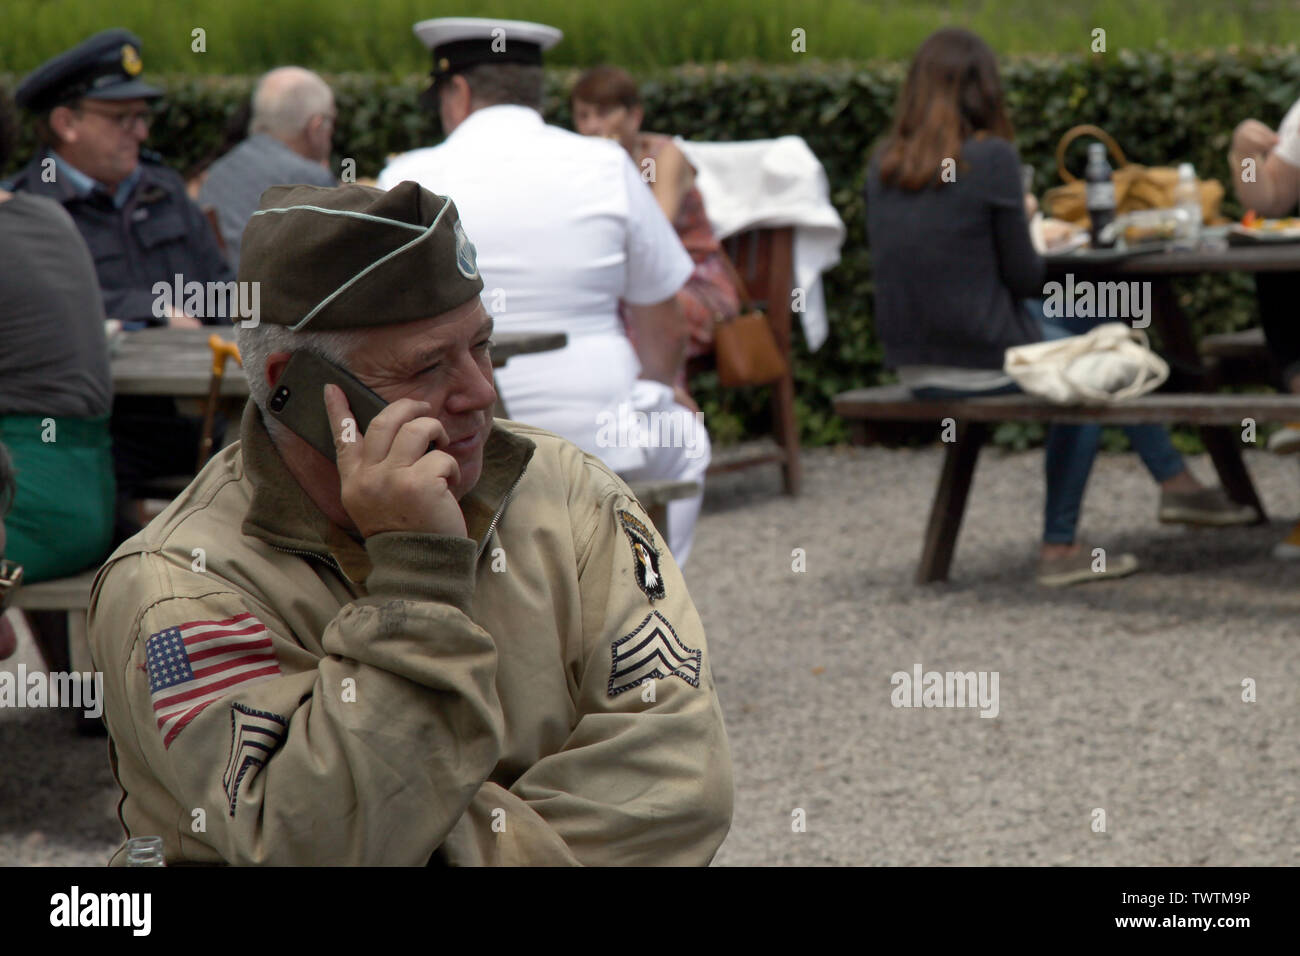 300999fb1d2f0 A WW2 reenactment of a US Army Sergeant of 101st Airborne in Ike Jacket and  garrison